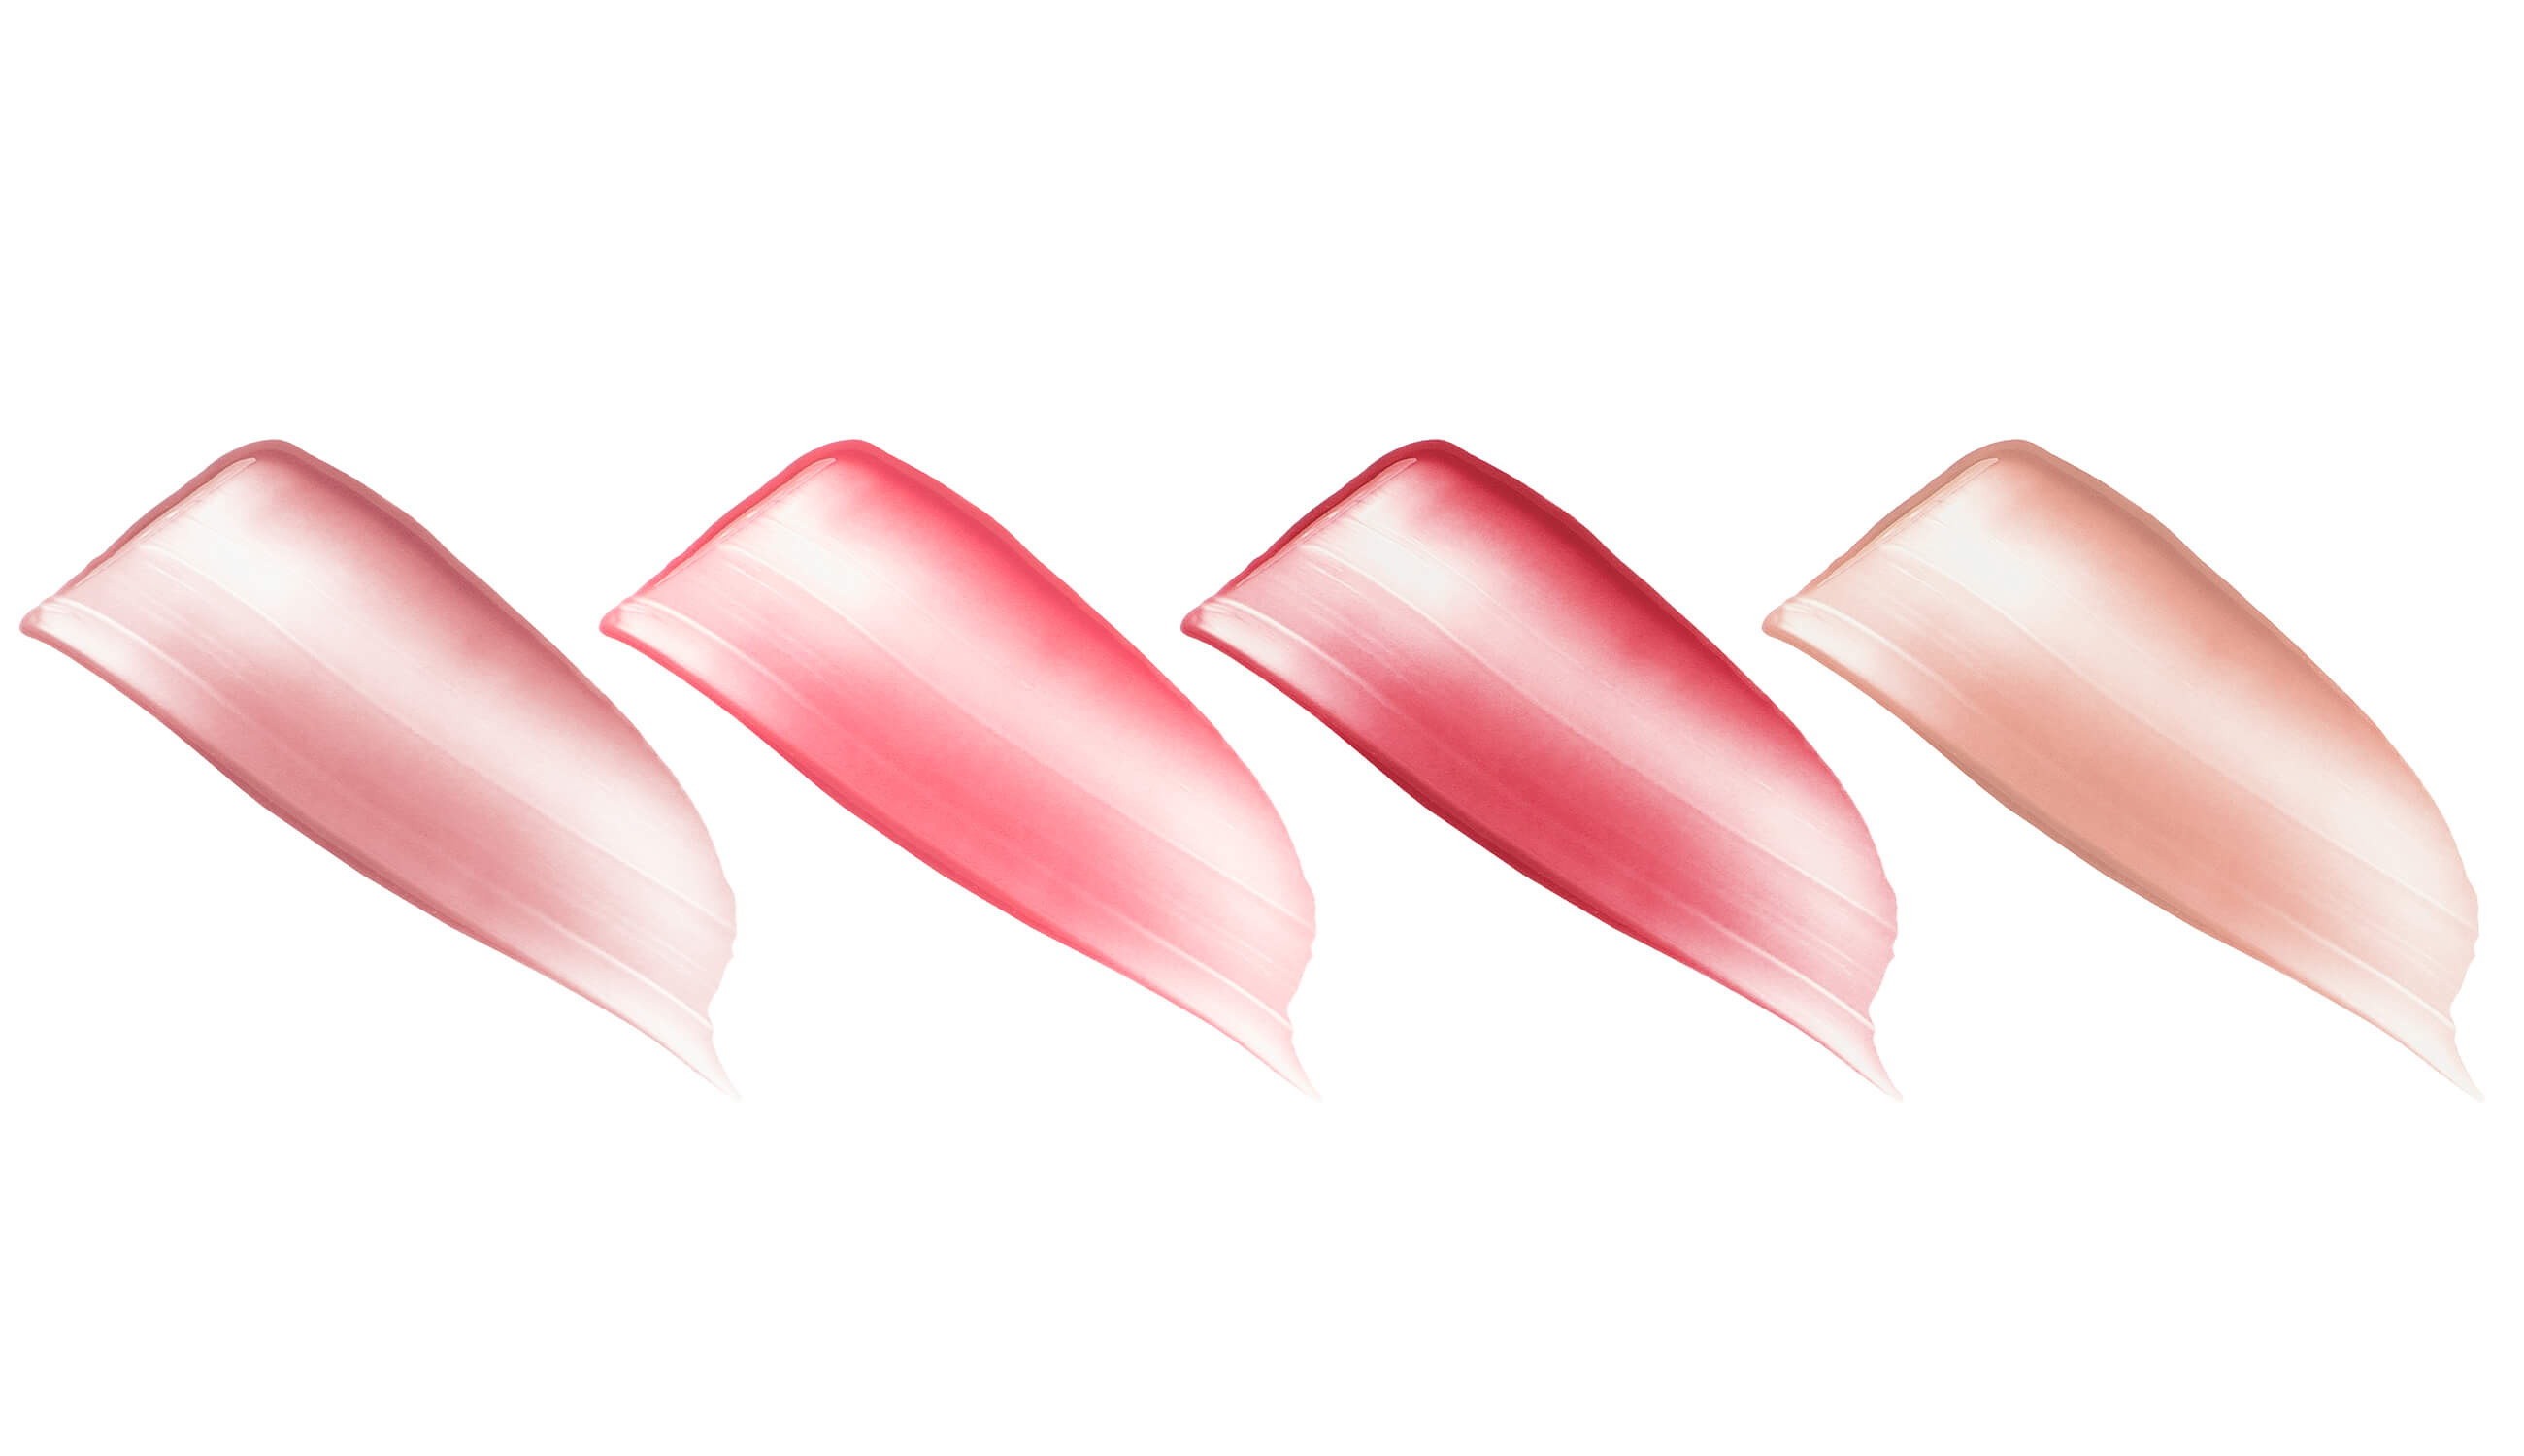 Swatches_swipes of sheer lip color.jpg